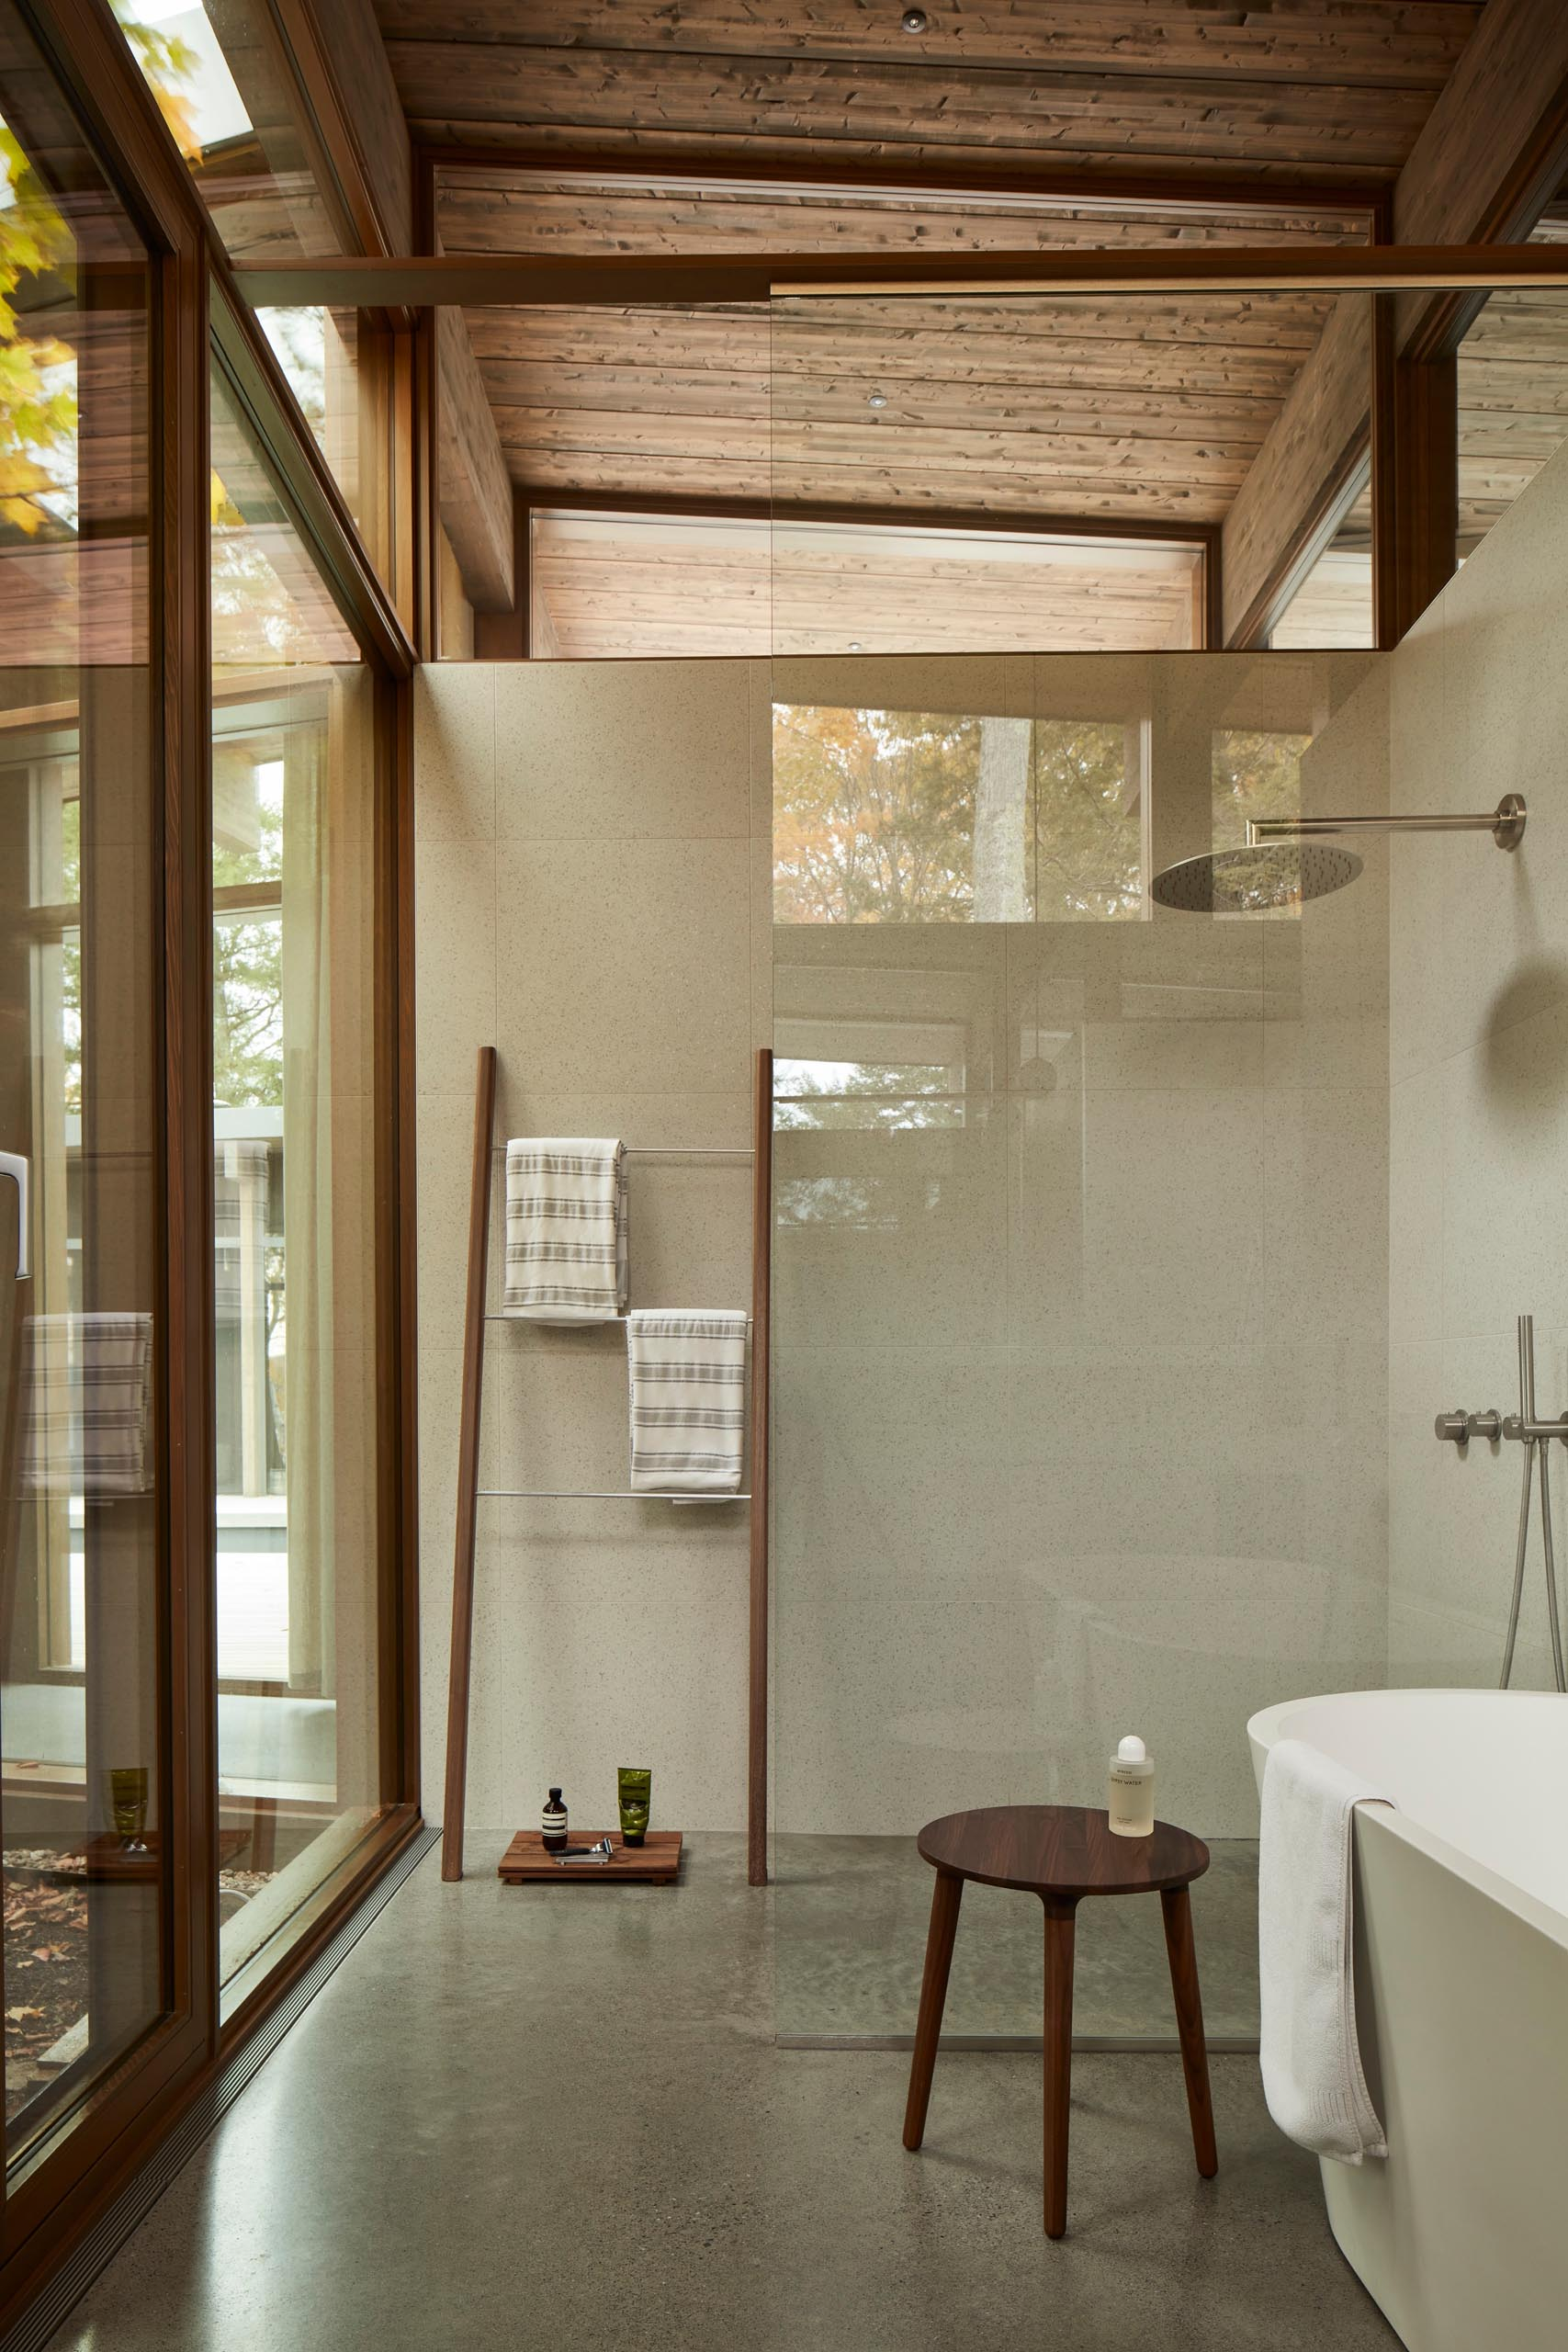 In this minimalist bathroom, wood accents have been added in the form of a decorative ladder, tray, and stool.